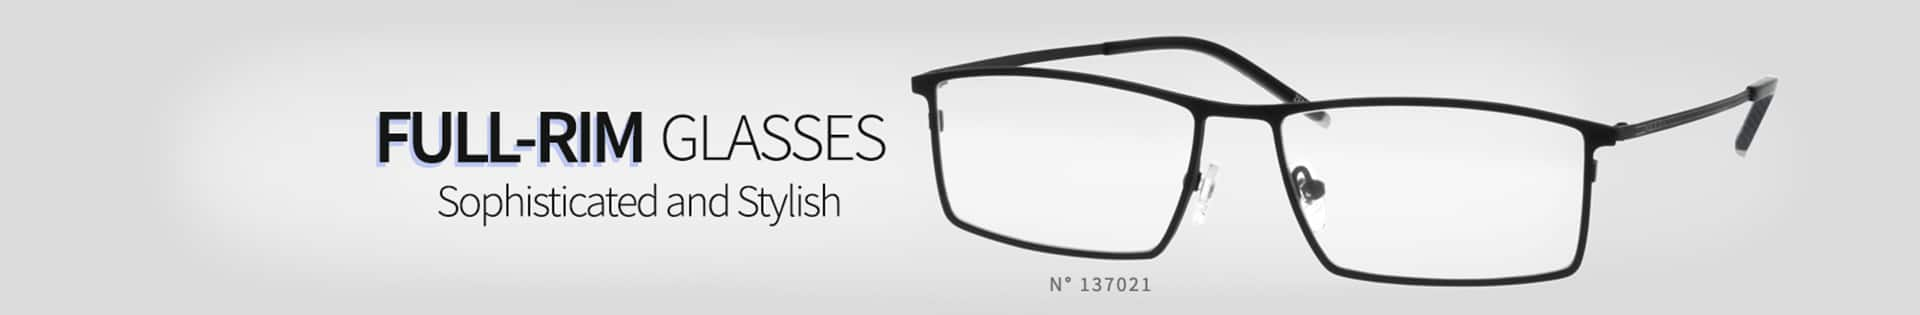 Full-Rim Glasses, Sophisticated and Stylish, frame #137021